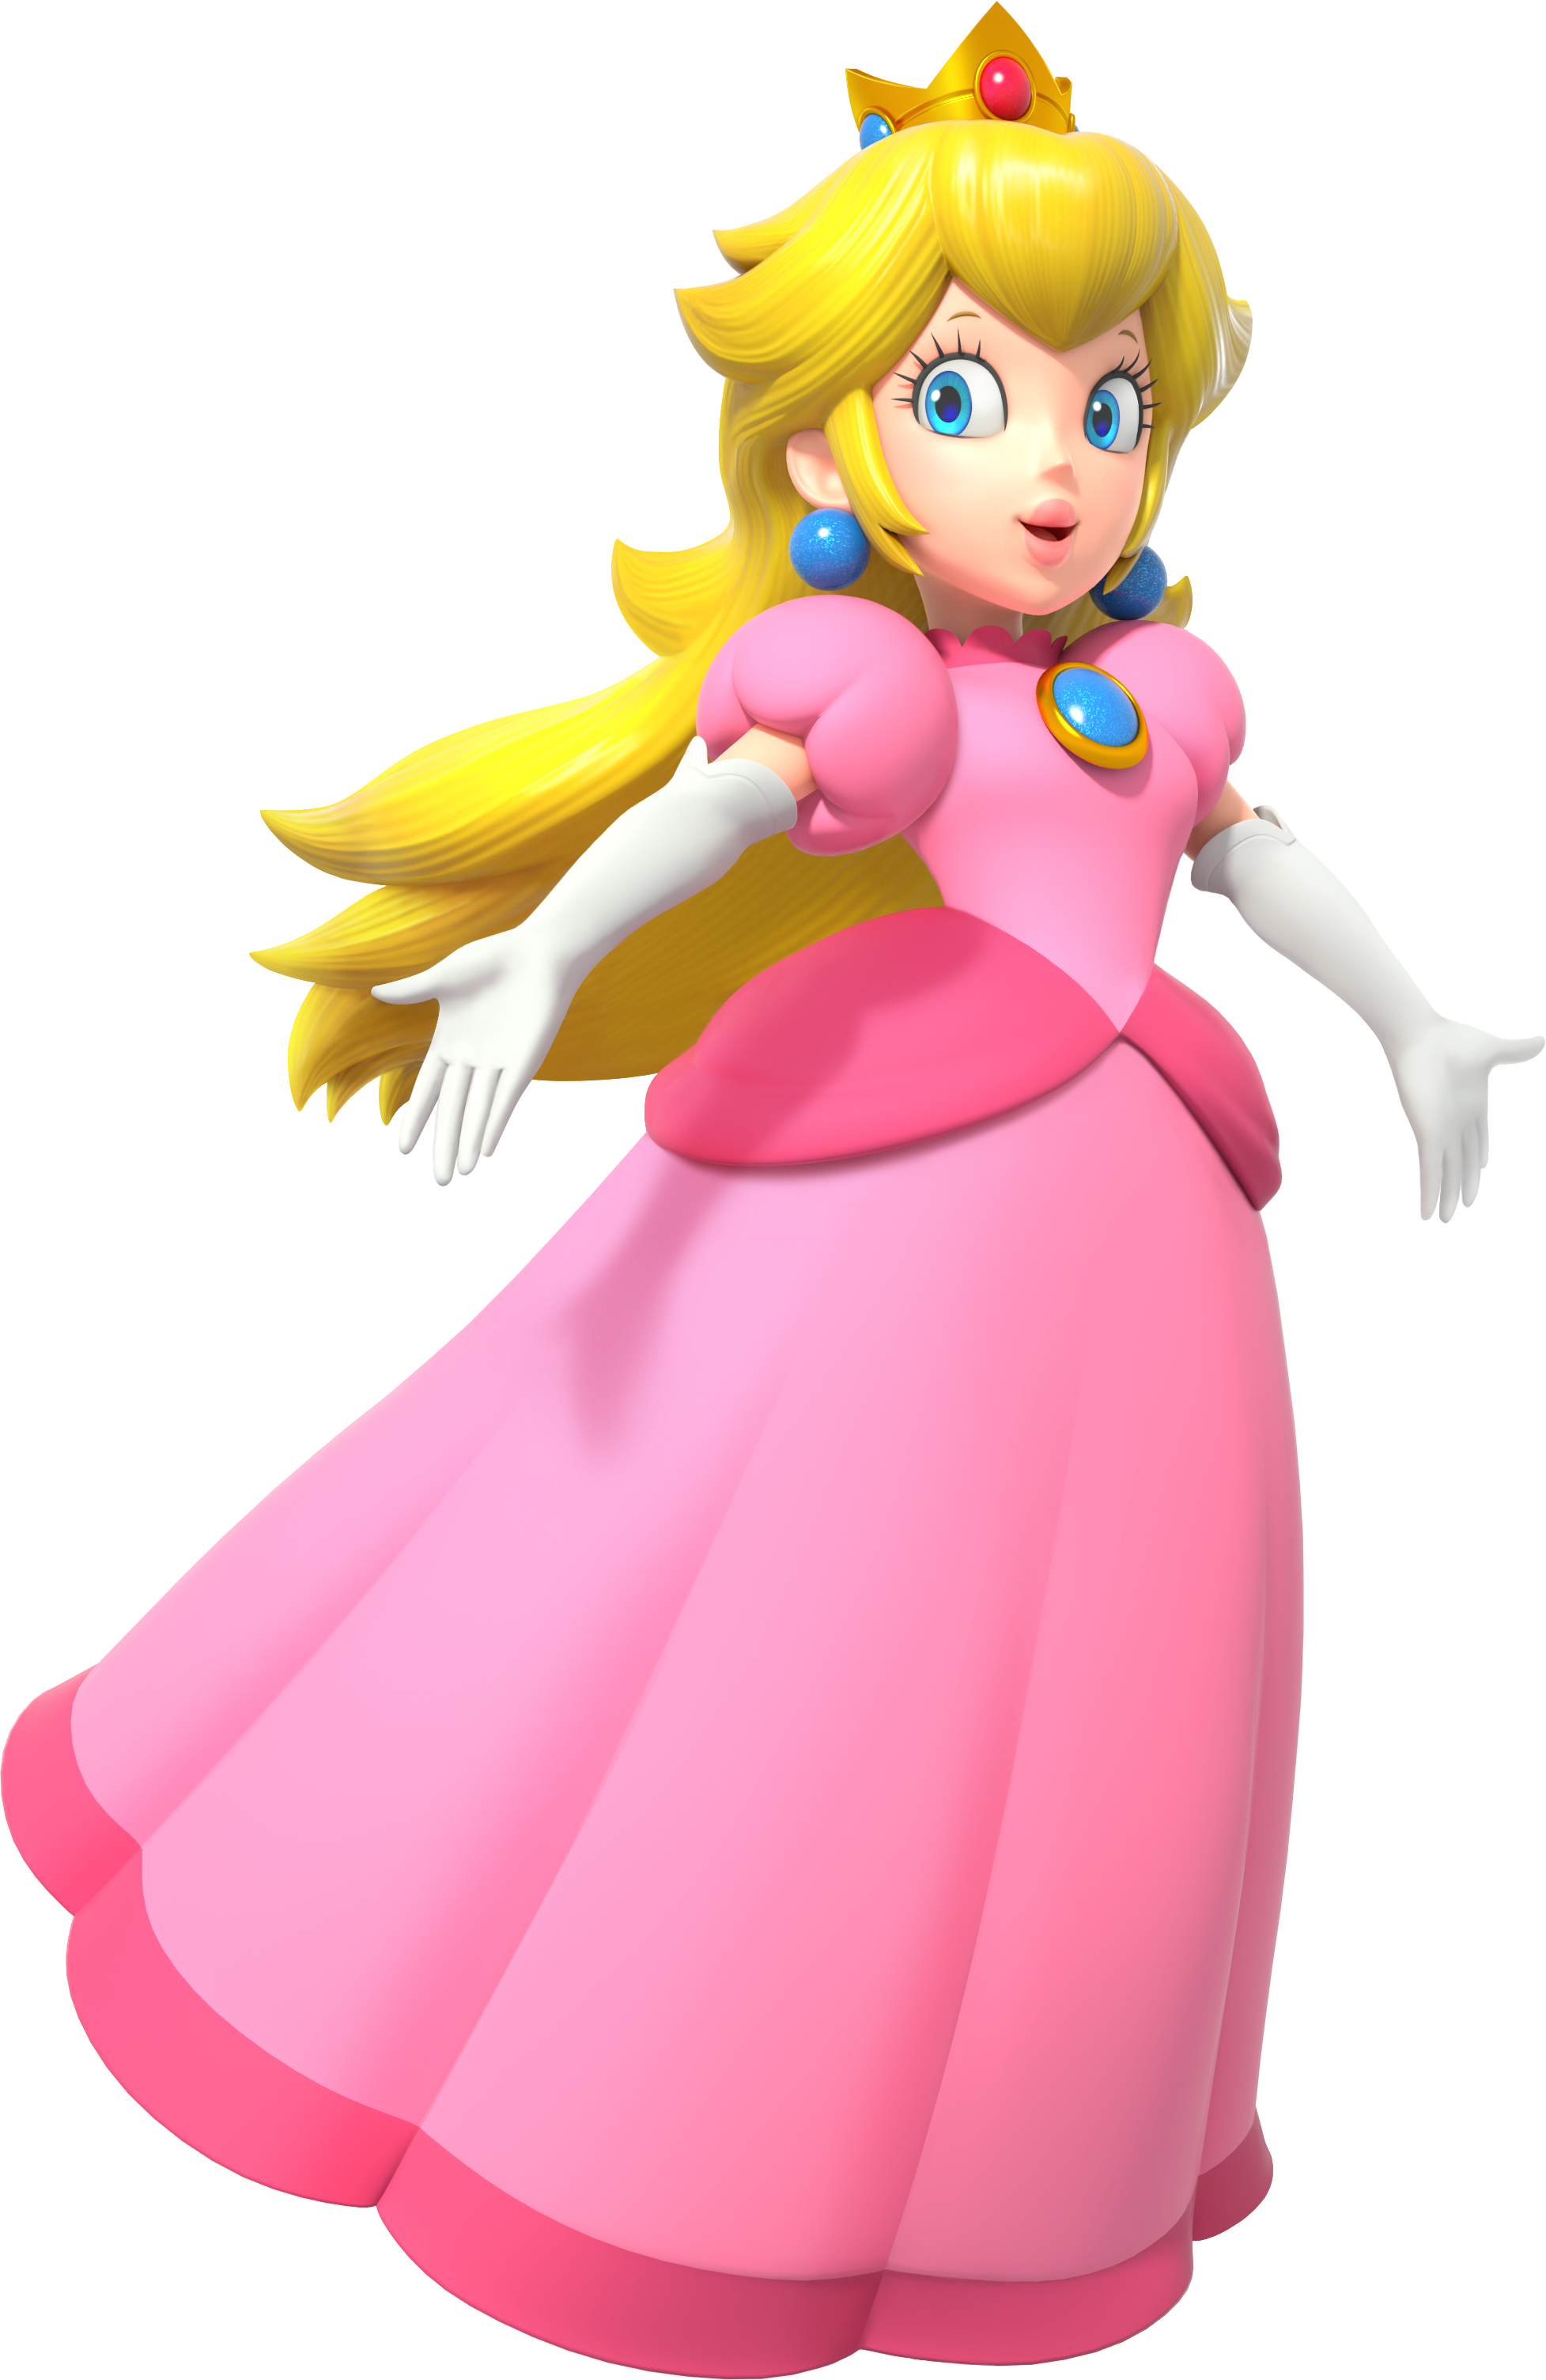 Princess crown and wand clipart graphic Princess Peach | Nintendo | FANDOM powered by Wikia graphic